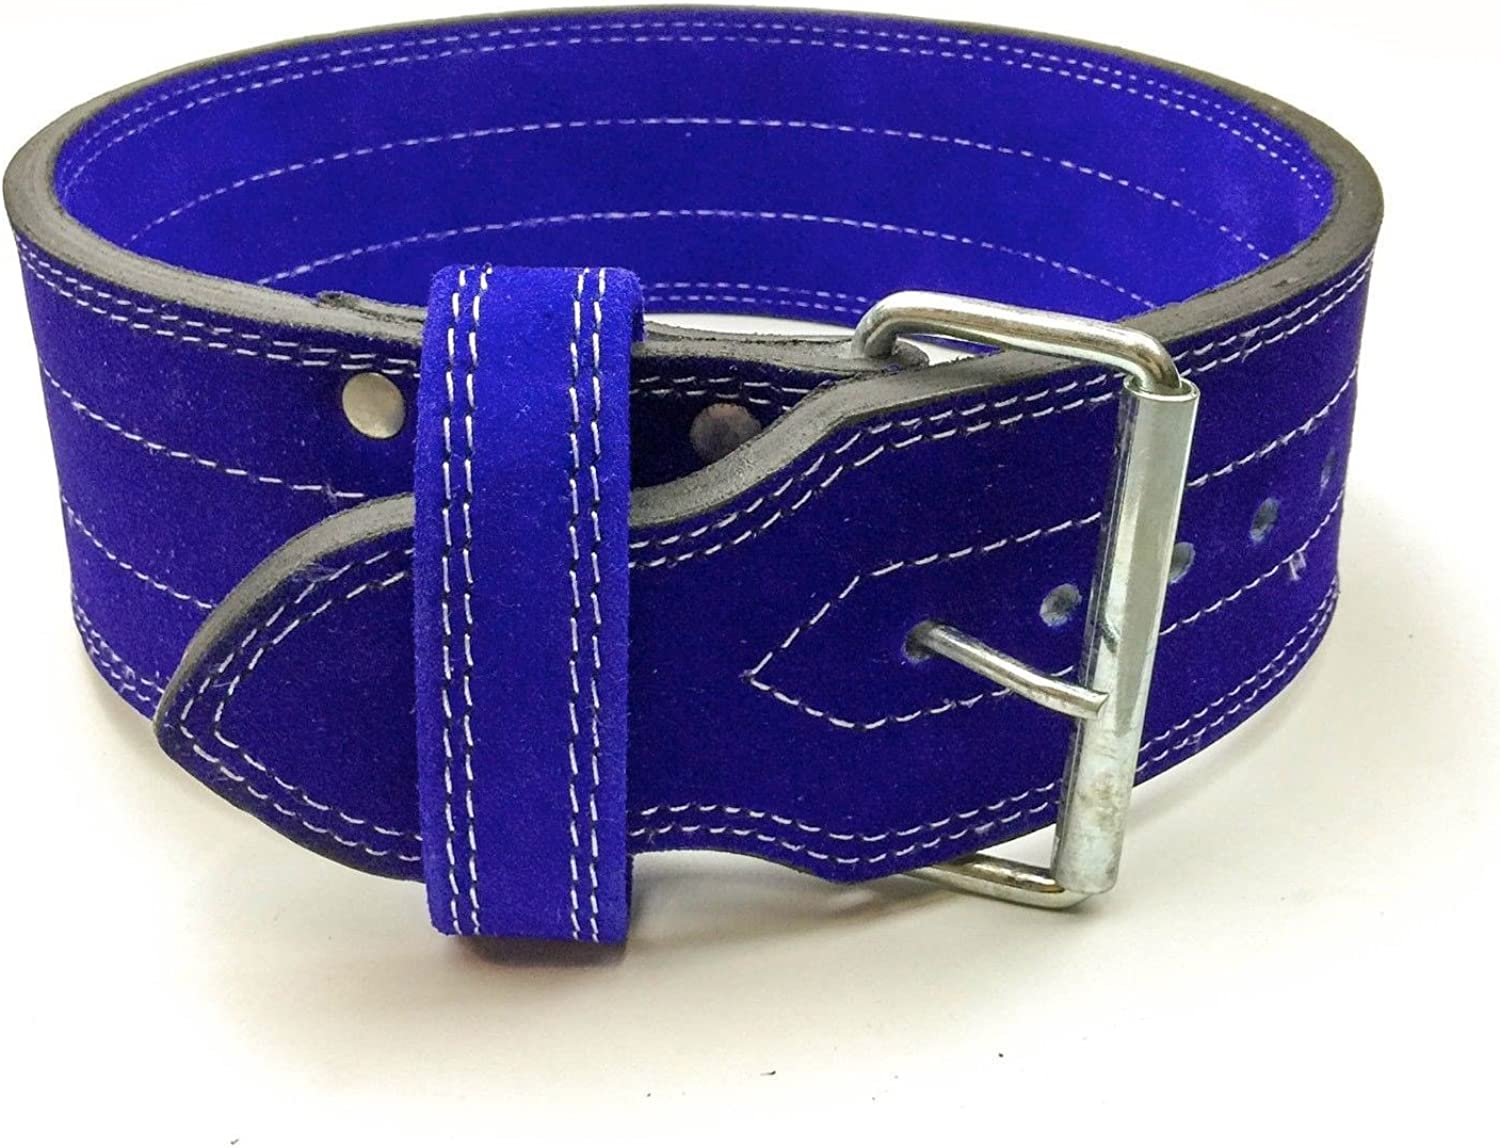 (Small 60cm - 70cm (Waist size not pant size), blueee) - Single Prong Powerlifting Belt 10mm Weight Lifting